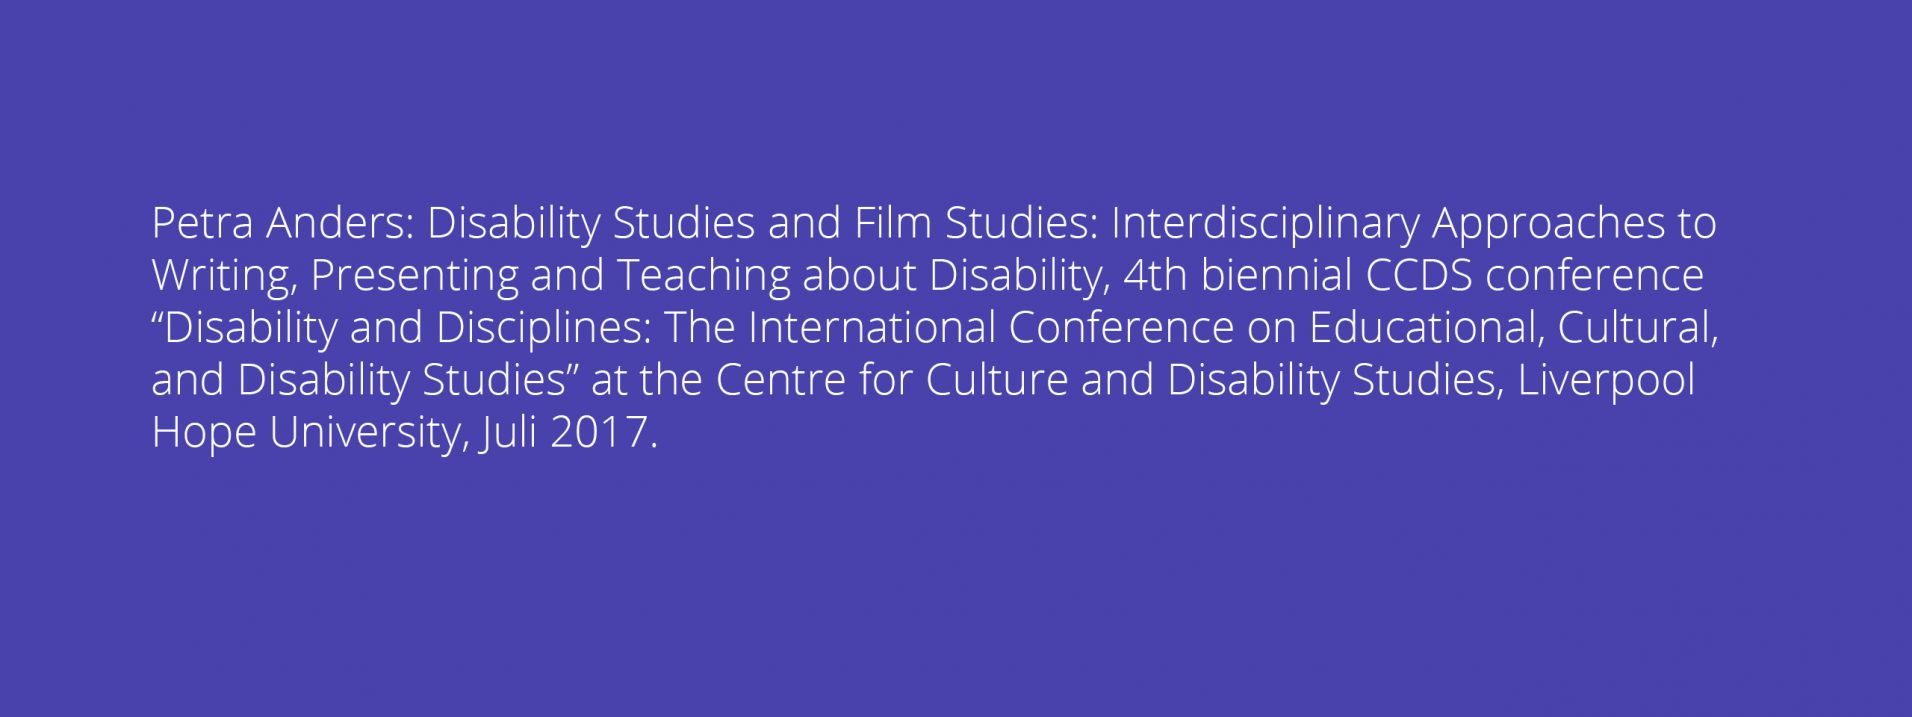 Petra Anders: Disability Studies and Film Studies: Interdisciplinary Approaches to Writing, Presenting and Teaching about Disability